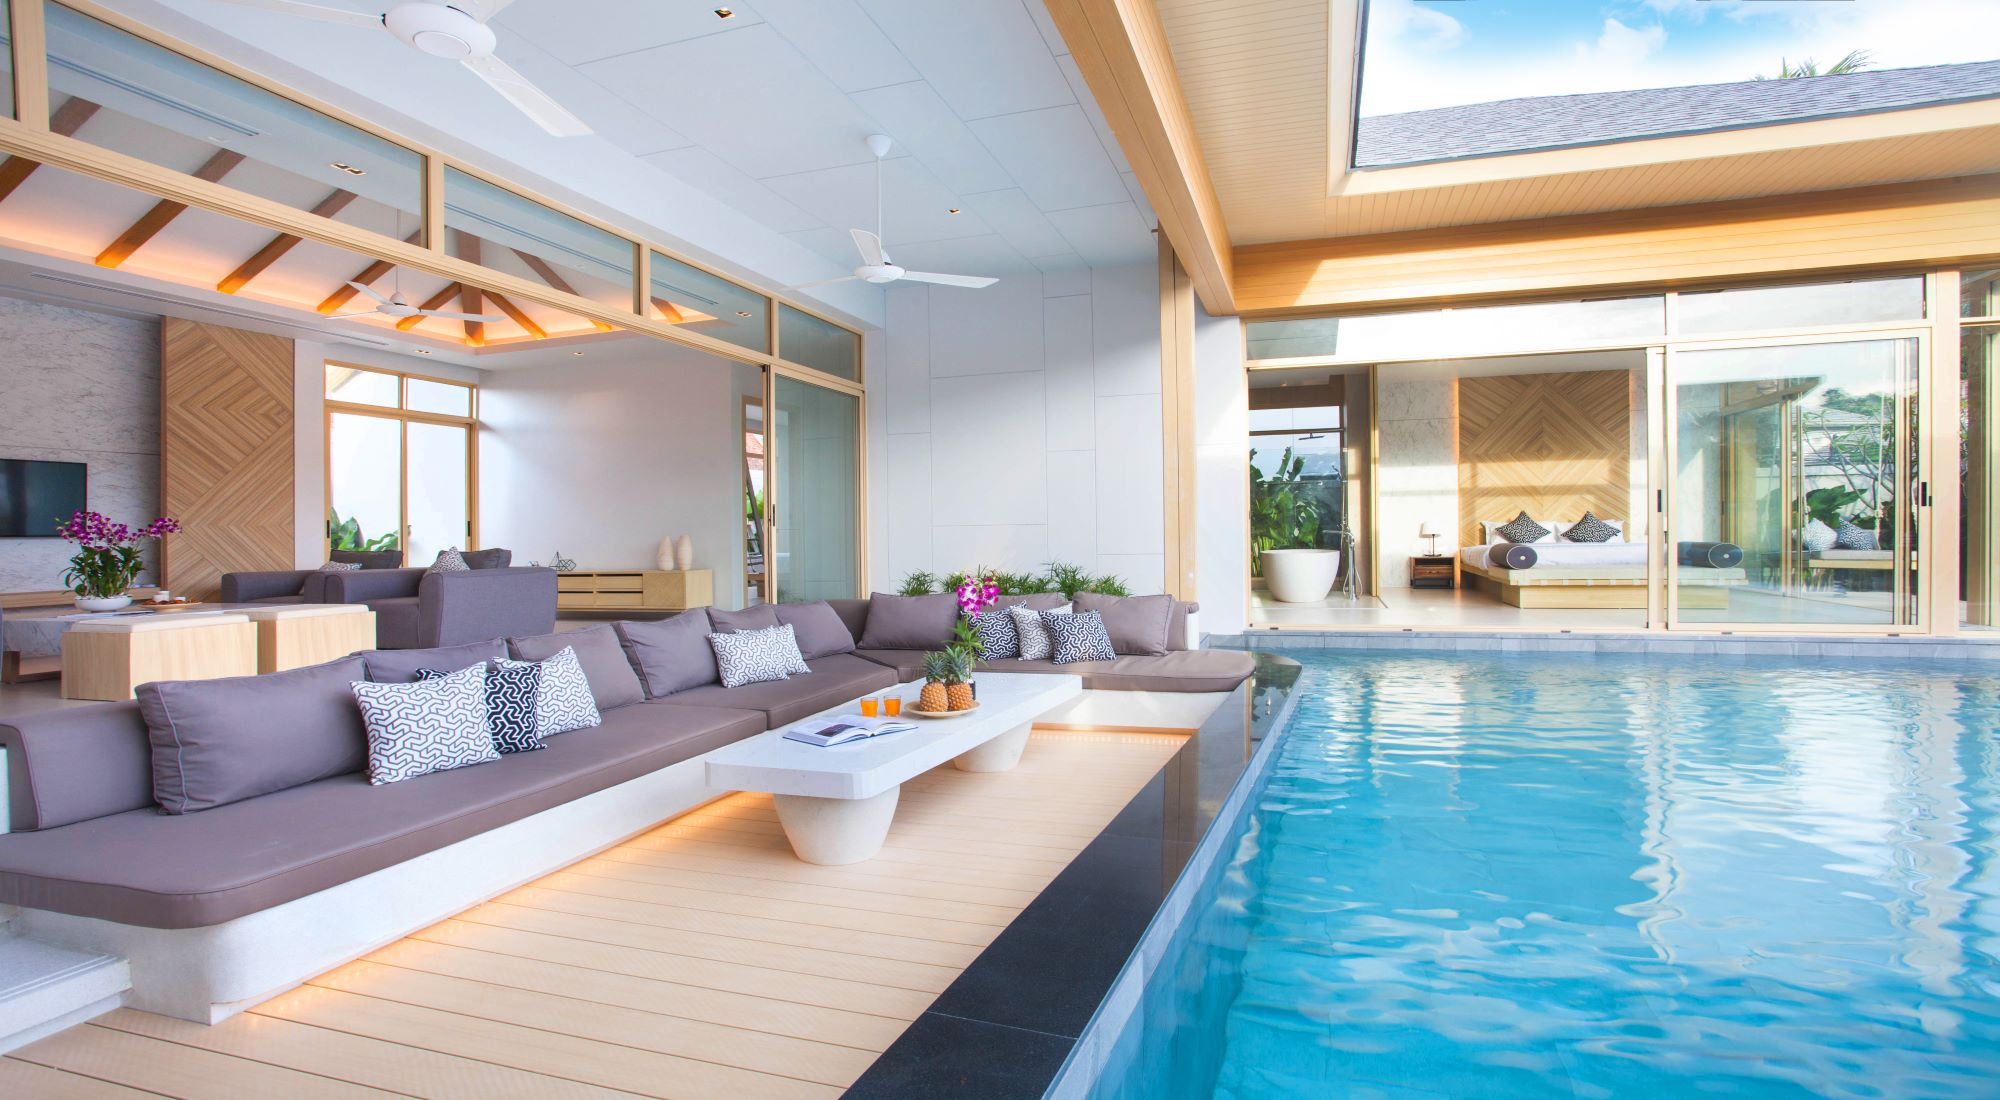 The swimming pool as an element of home revaluation